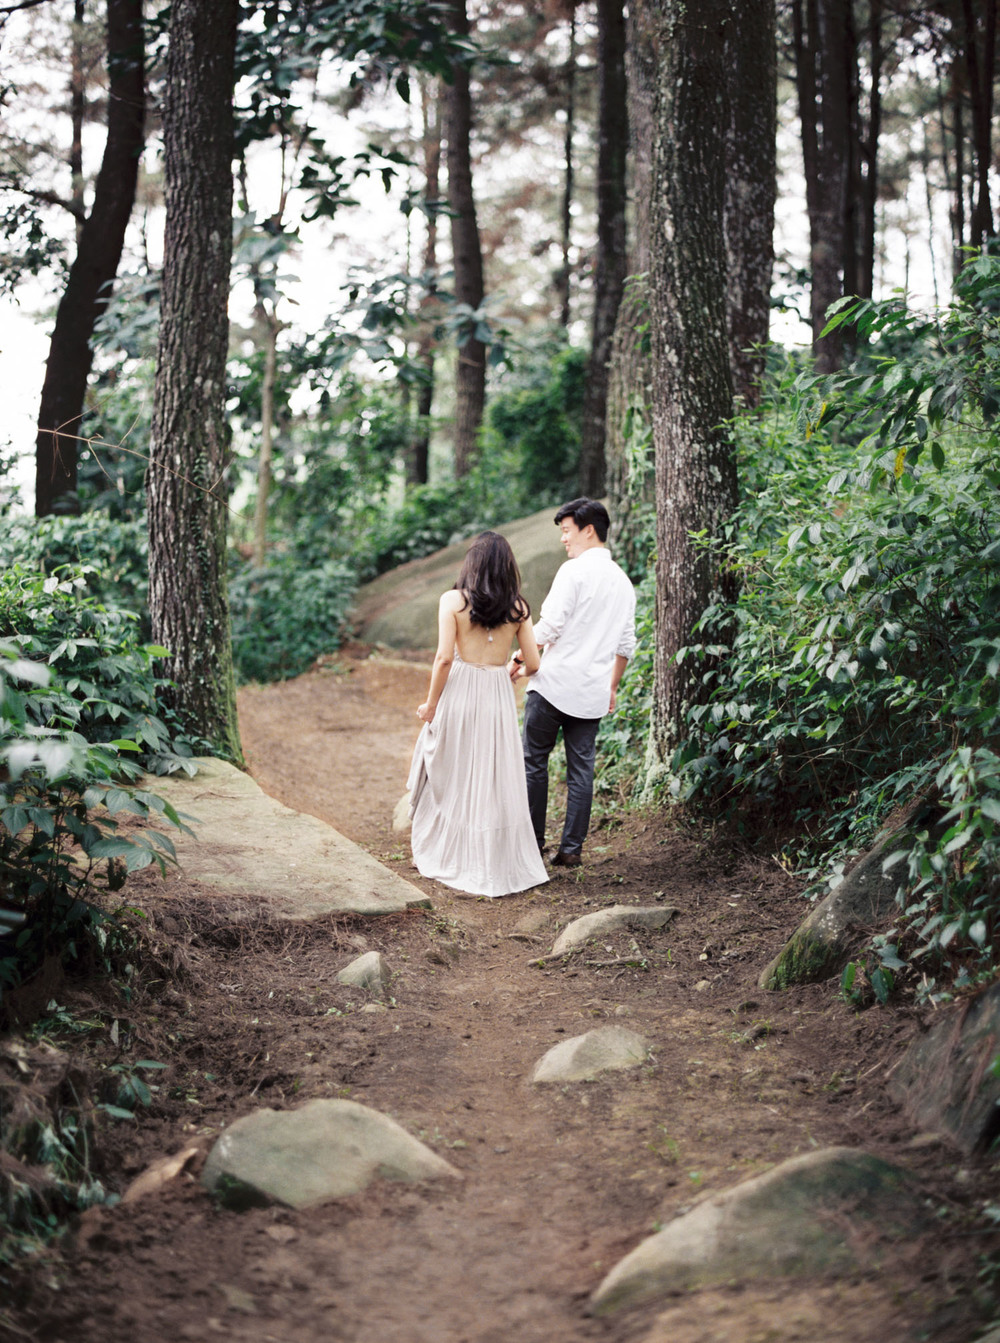 4-nature-outdoor-forest-prewedding-jakarta.jpg